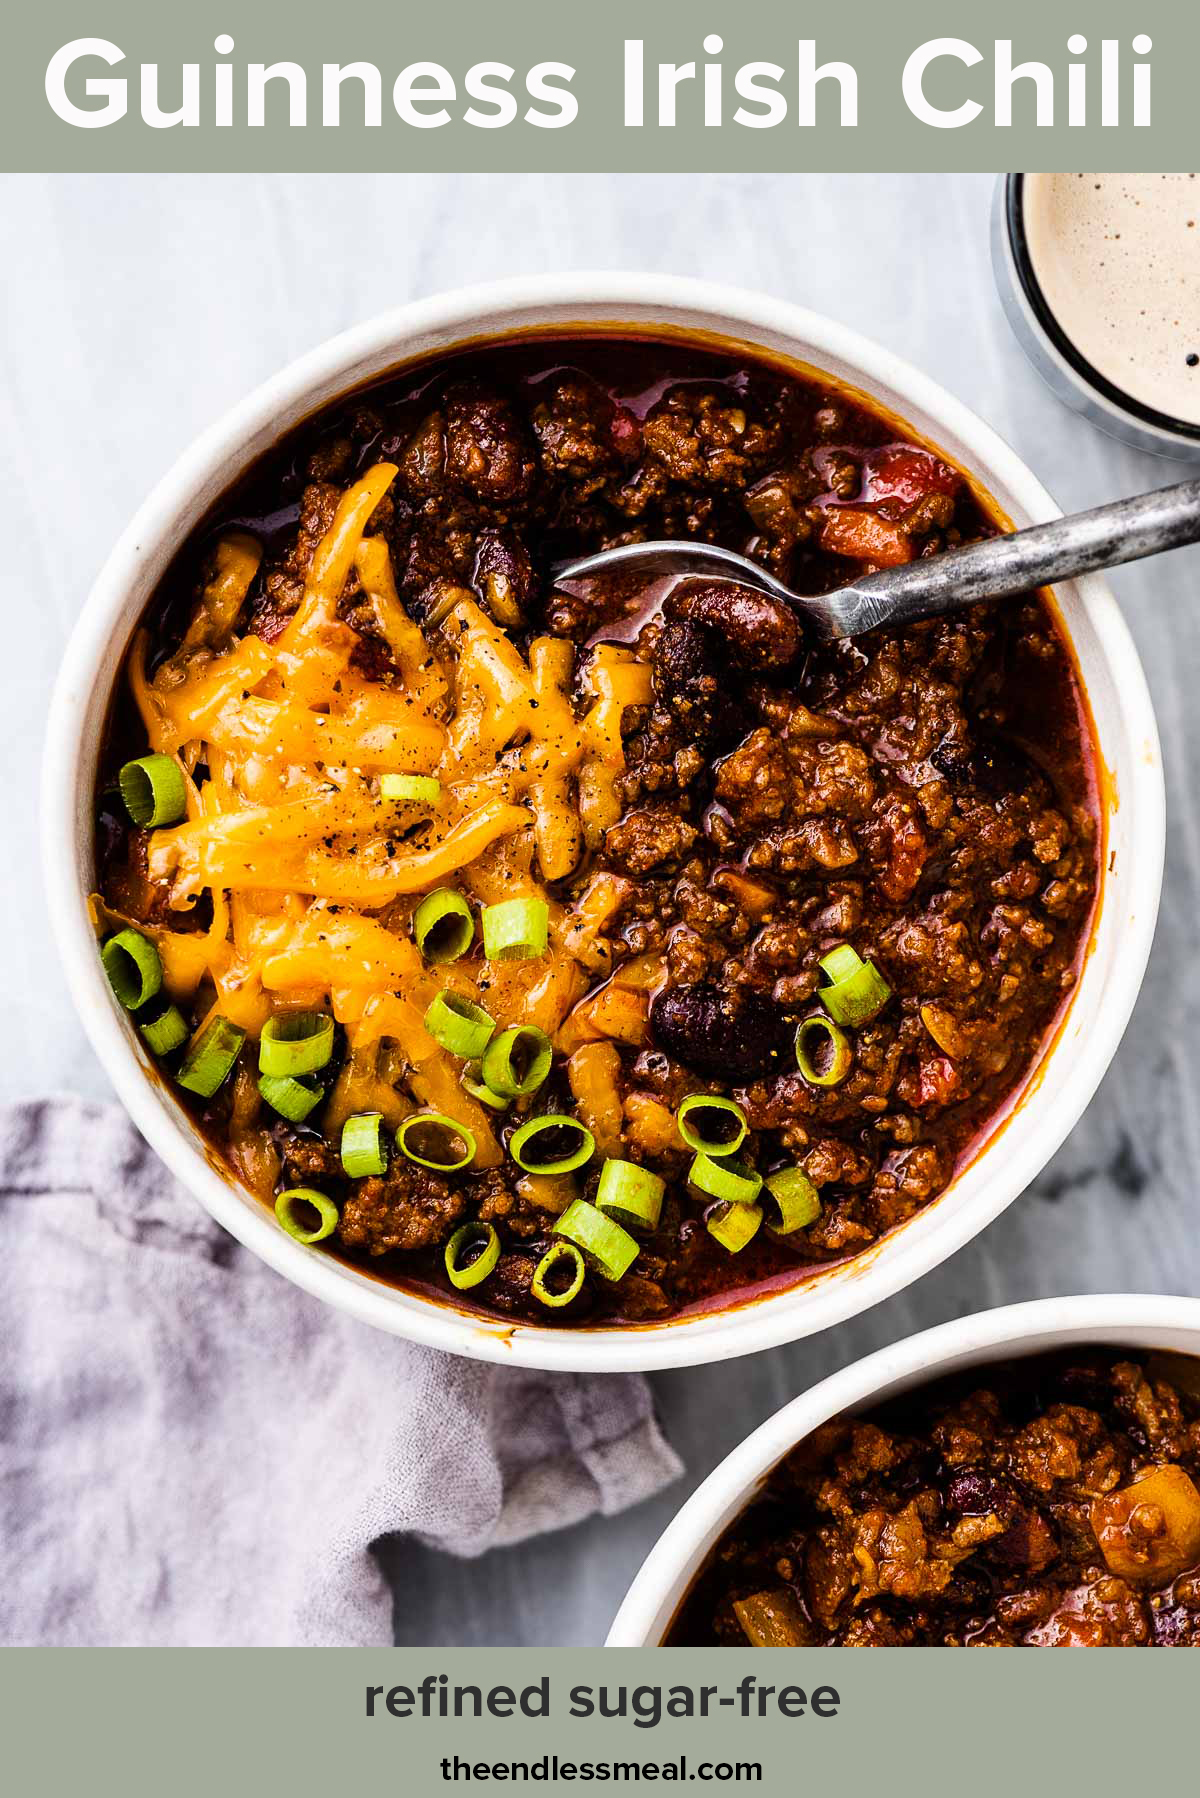 Two bowls of Irish chili with glasses of Guinness on the side with the recipe title on the top.